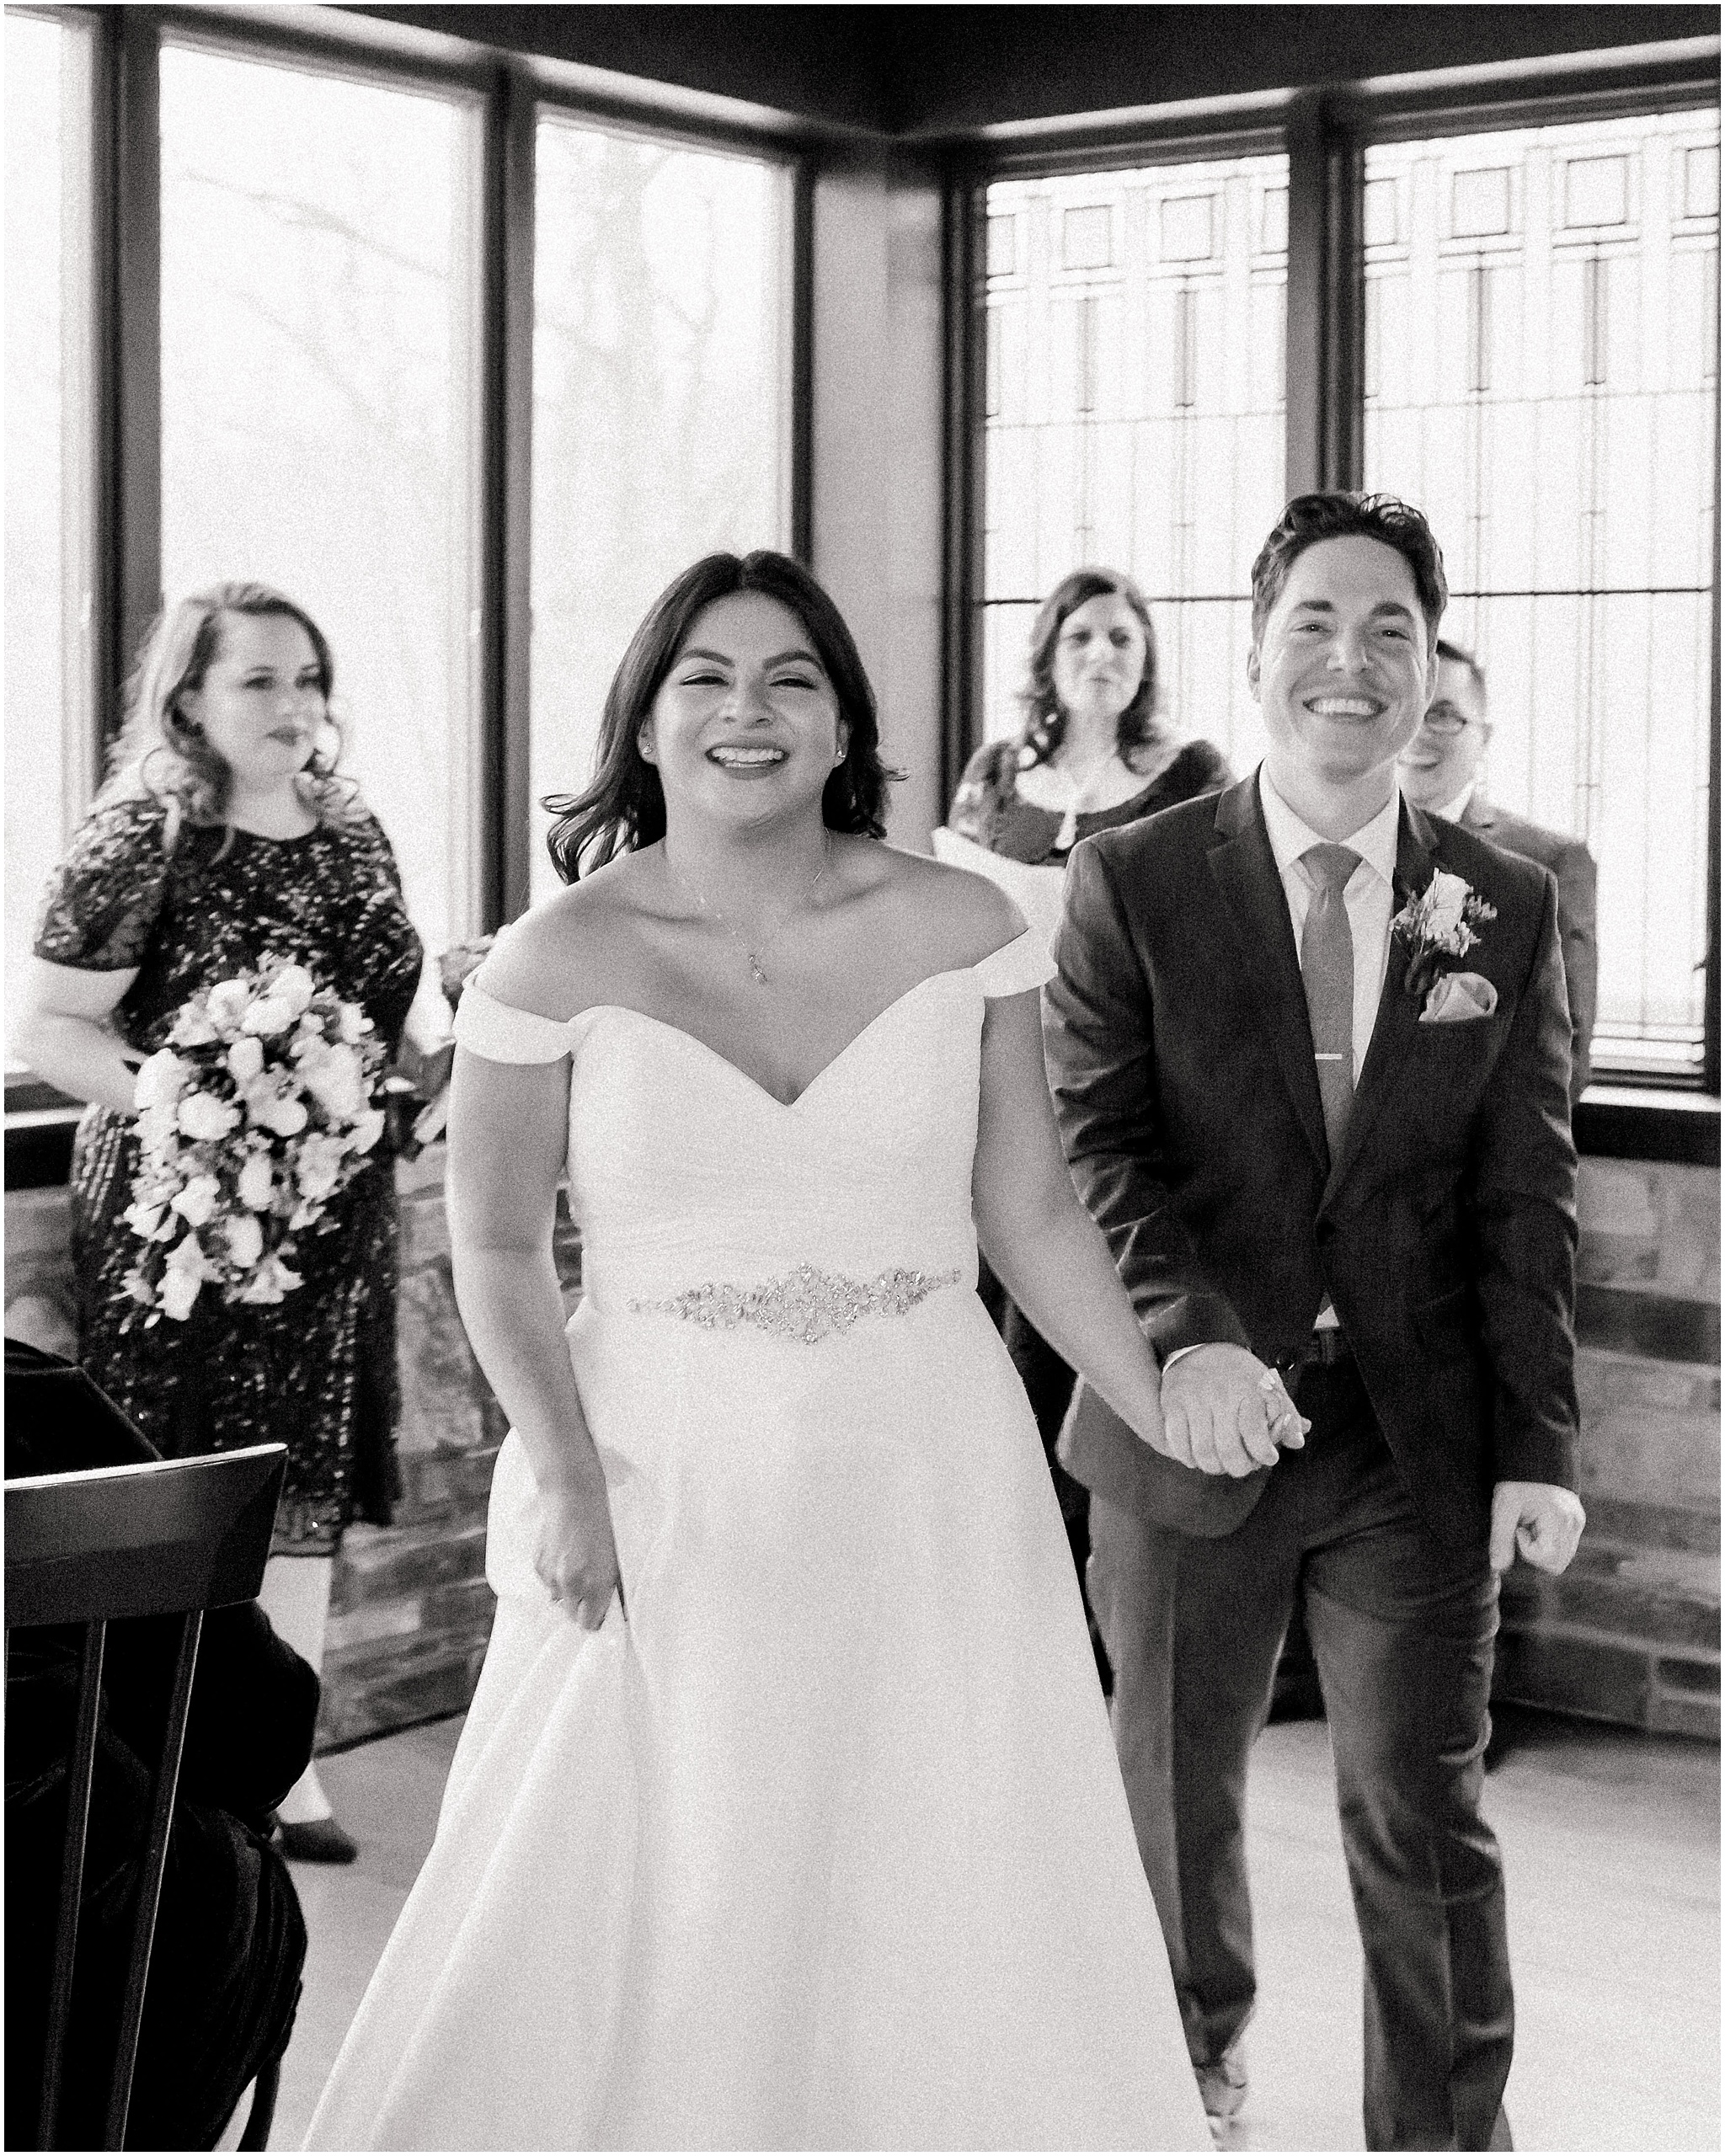 the newly married bride and groom walk up the aisle, happy, smiling and excited for their elopement